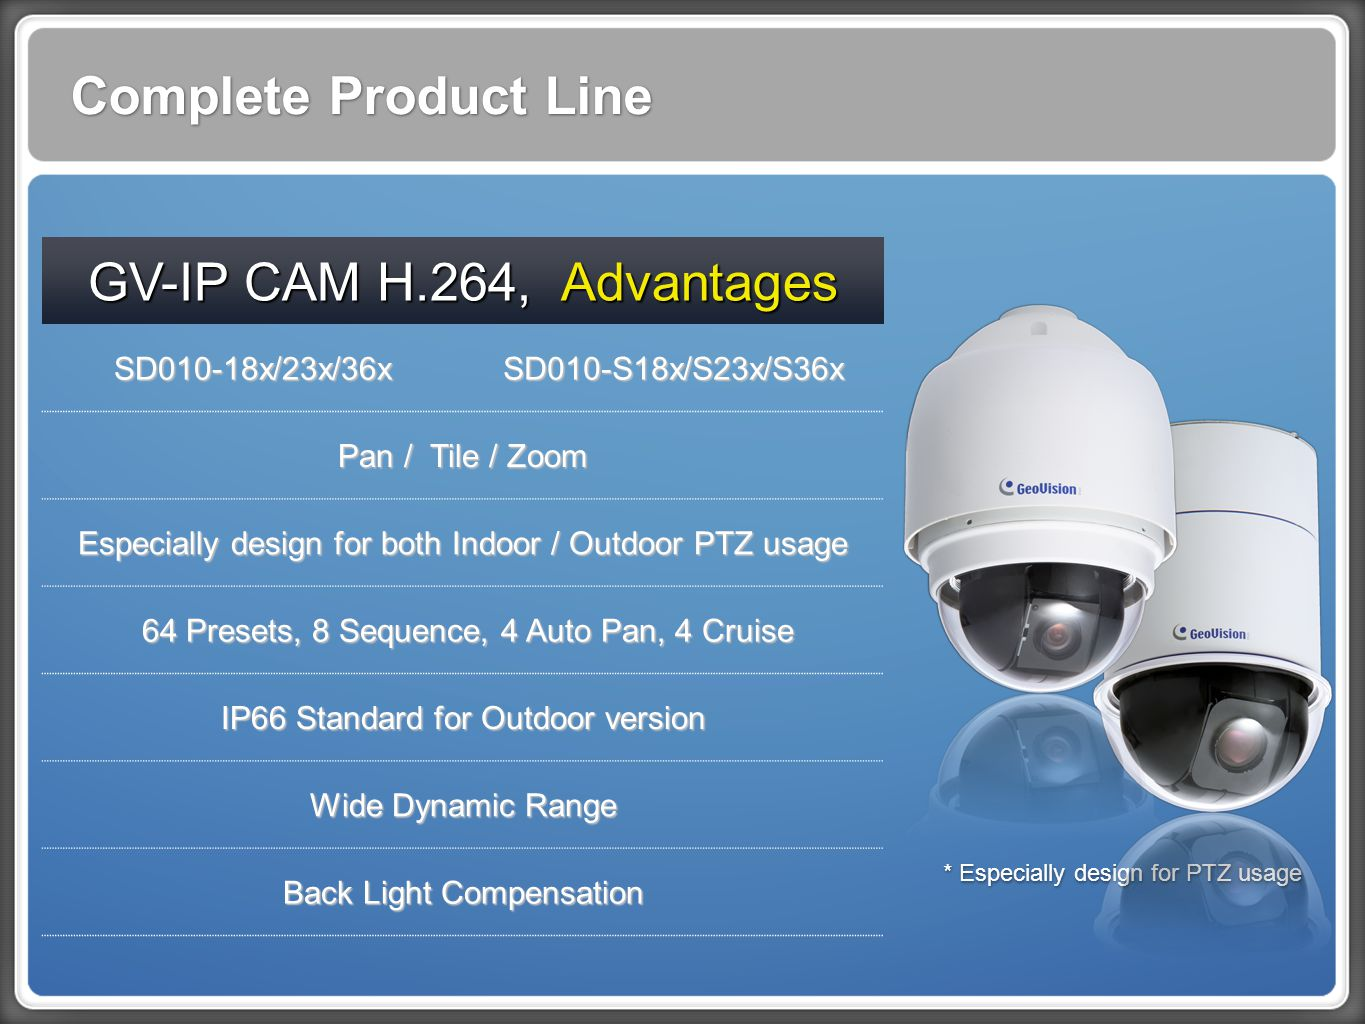 Complete Product Line GV-IP CAM H.264, Advantages SD010-18x/23x/36xSD010-S18x/S23x/S36x Pan / Tile / Zoom Especially design for both Indoor / Outdoor PTZ usage 64 Presets, 8 Sequence, 4 Auto Pan, 4 Cruise 64 Presets, 8 Sequence, 4 Auto Pan, 4 Cruise IP66 Standard for Outdoor version Wide Dynamic Range Back Light Compensation * Especially design for PTZ usage